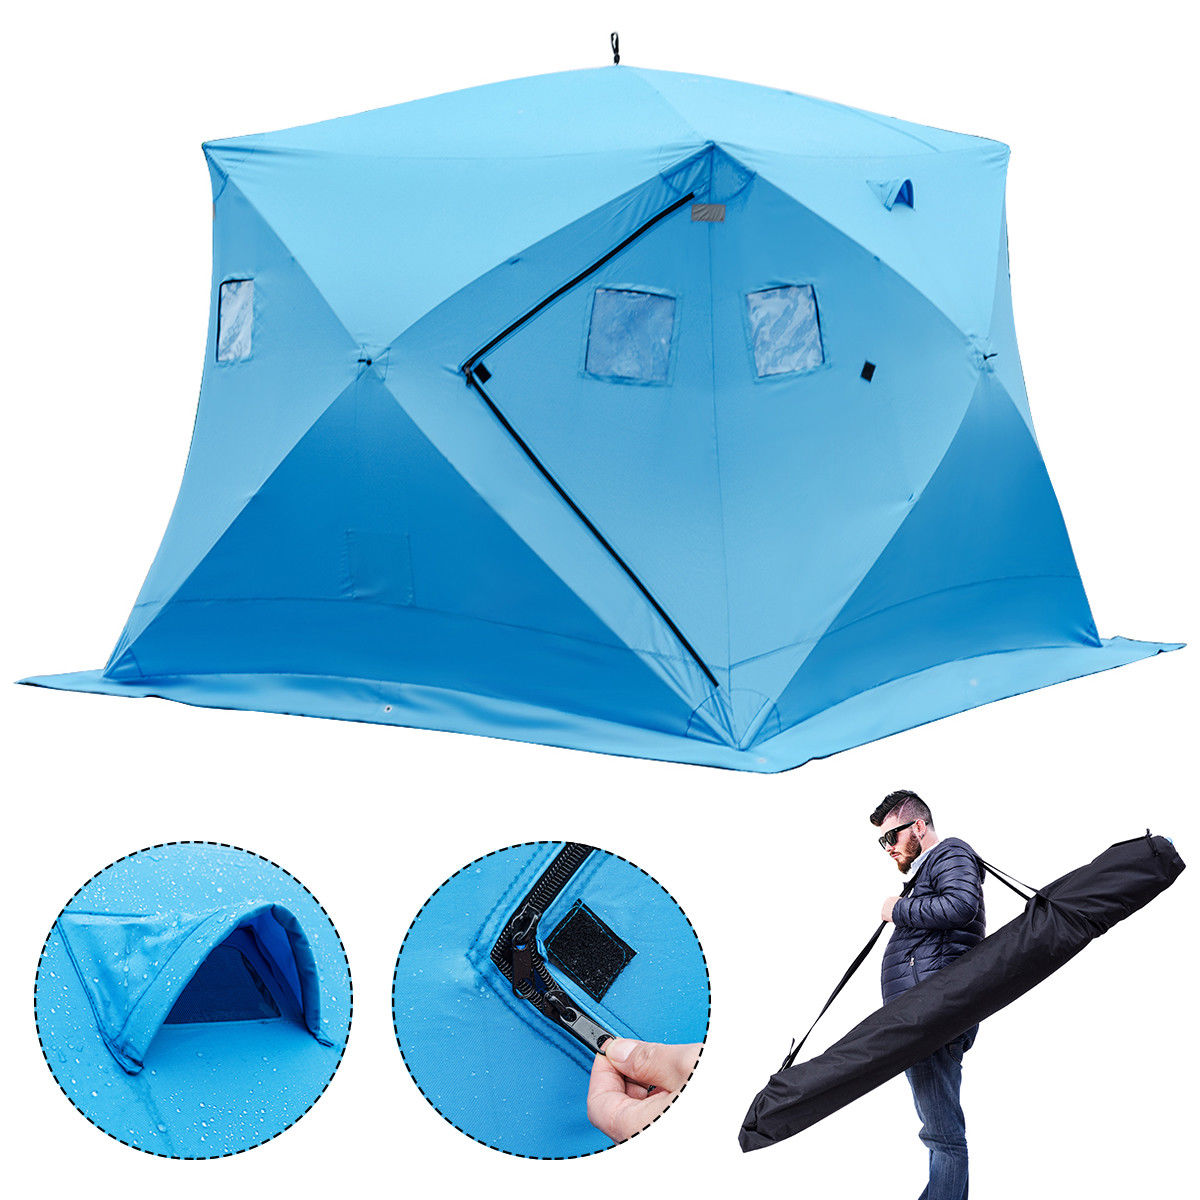 Gymax Waterproof Pop-up 4-person Ice Shelter Fishing Tent Shanty w Window Carrying Bag by Ice Shantys